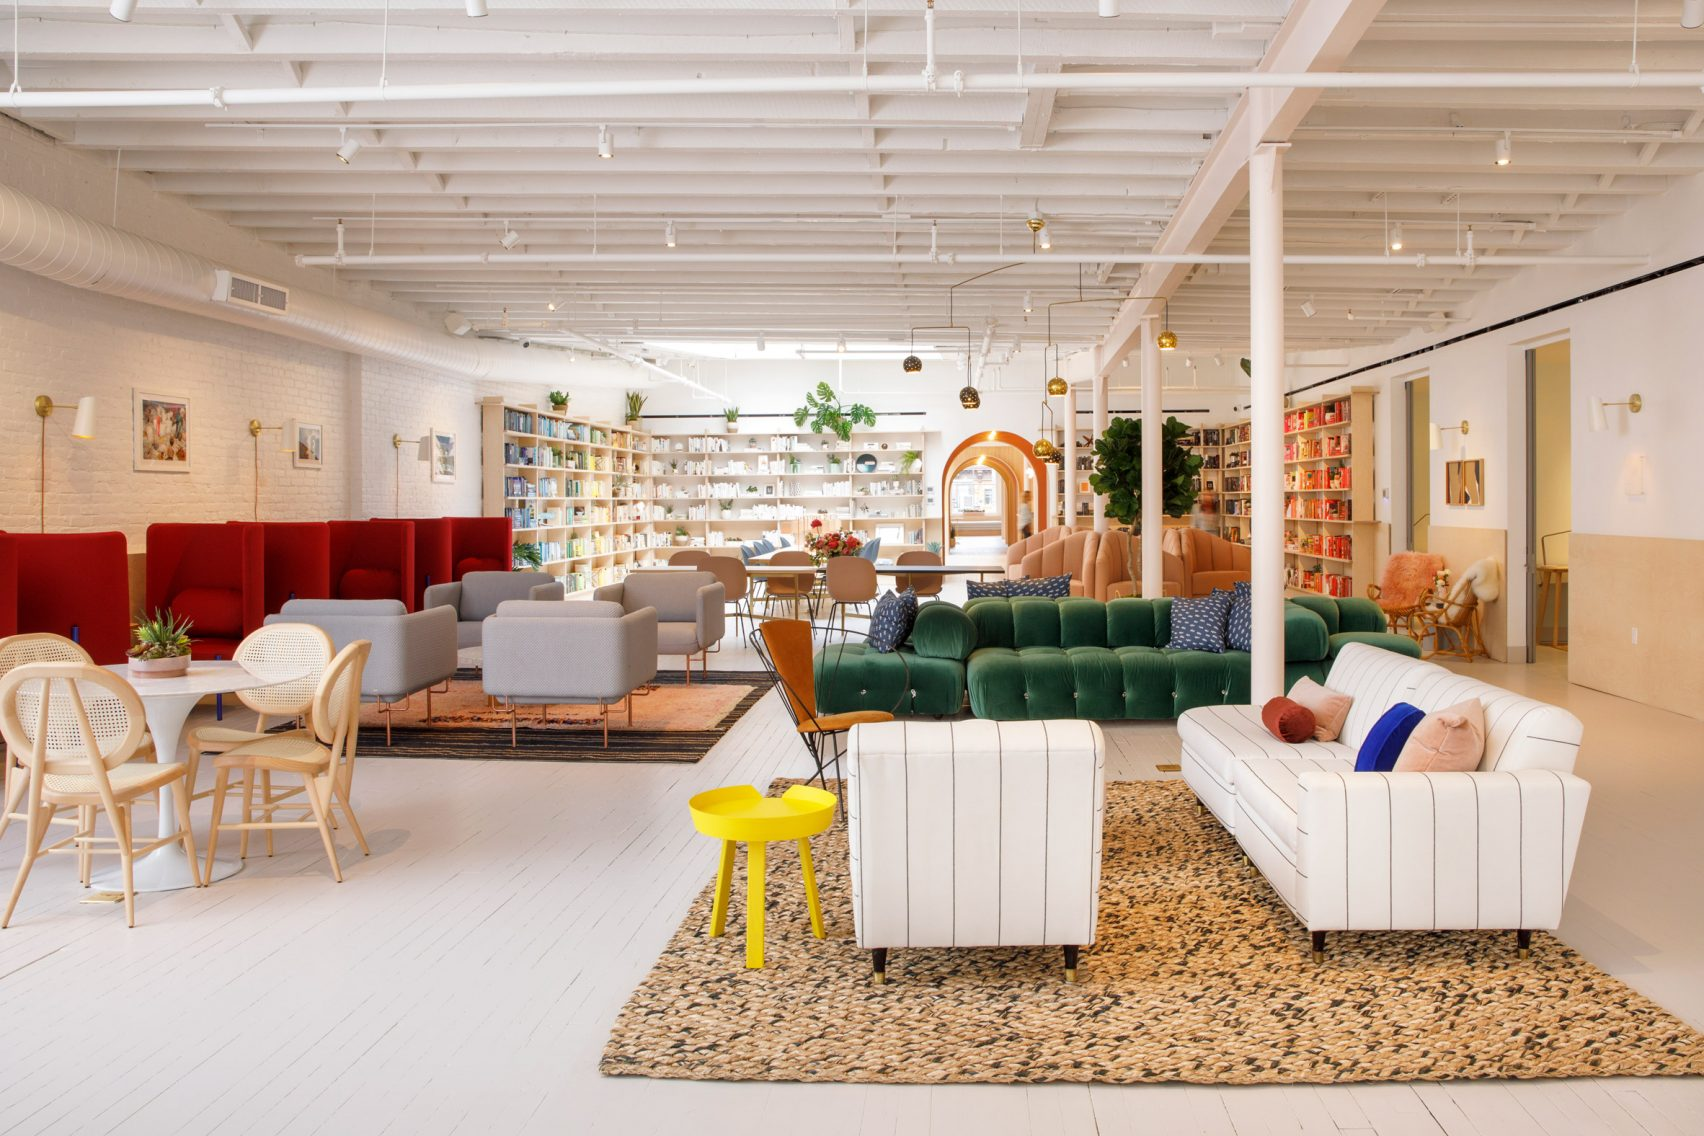 the-wing-women-only-co-working-members-club-soho-new-york_dezeen_2364_col_4-1704x1136.jpg